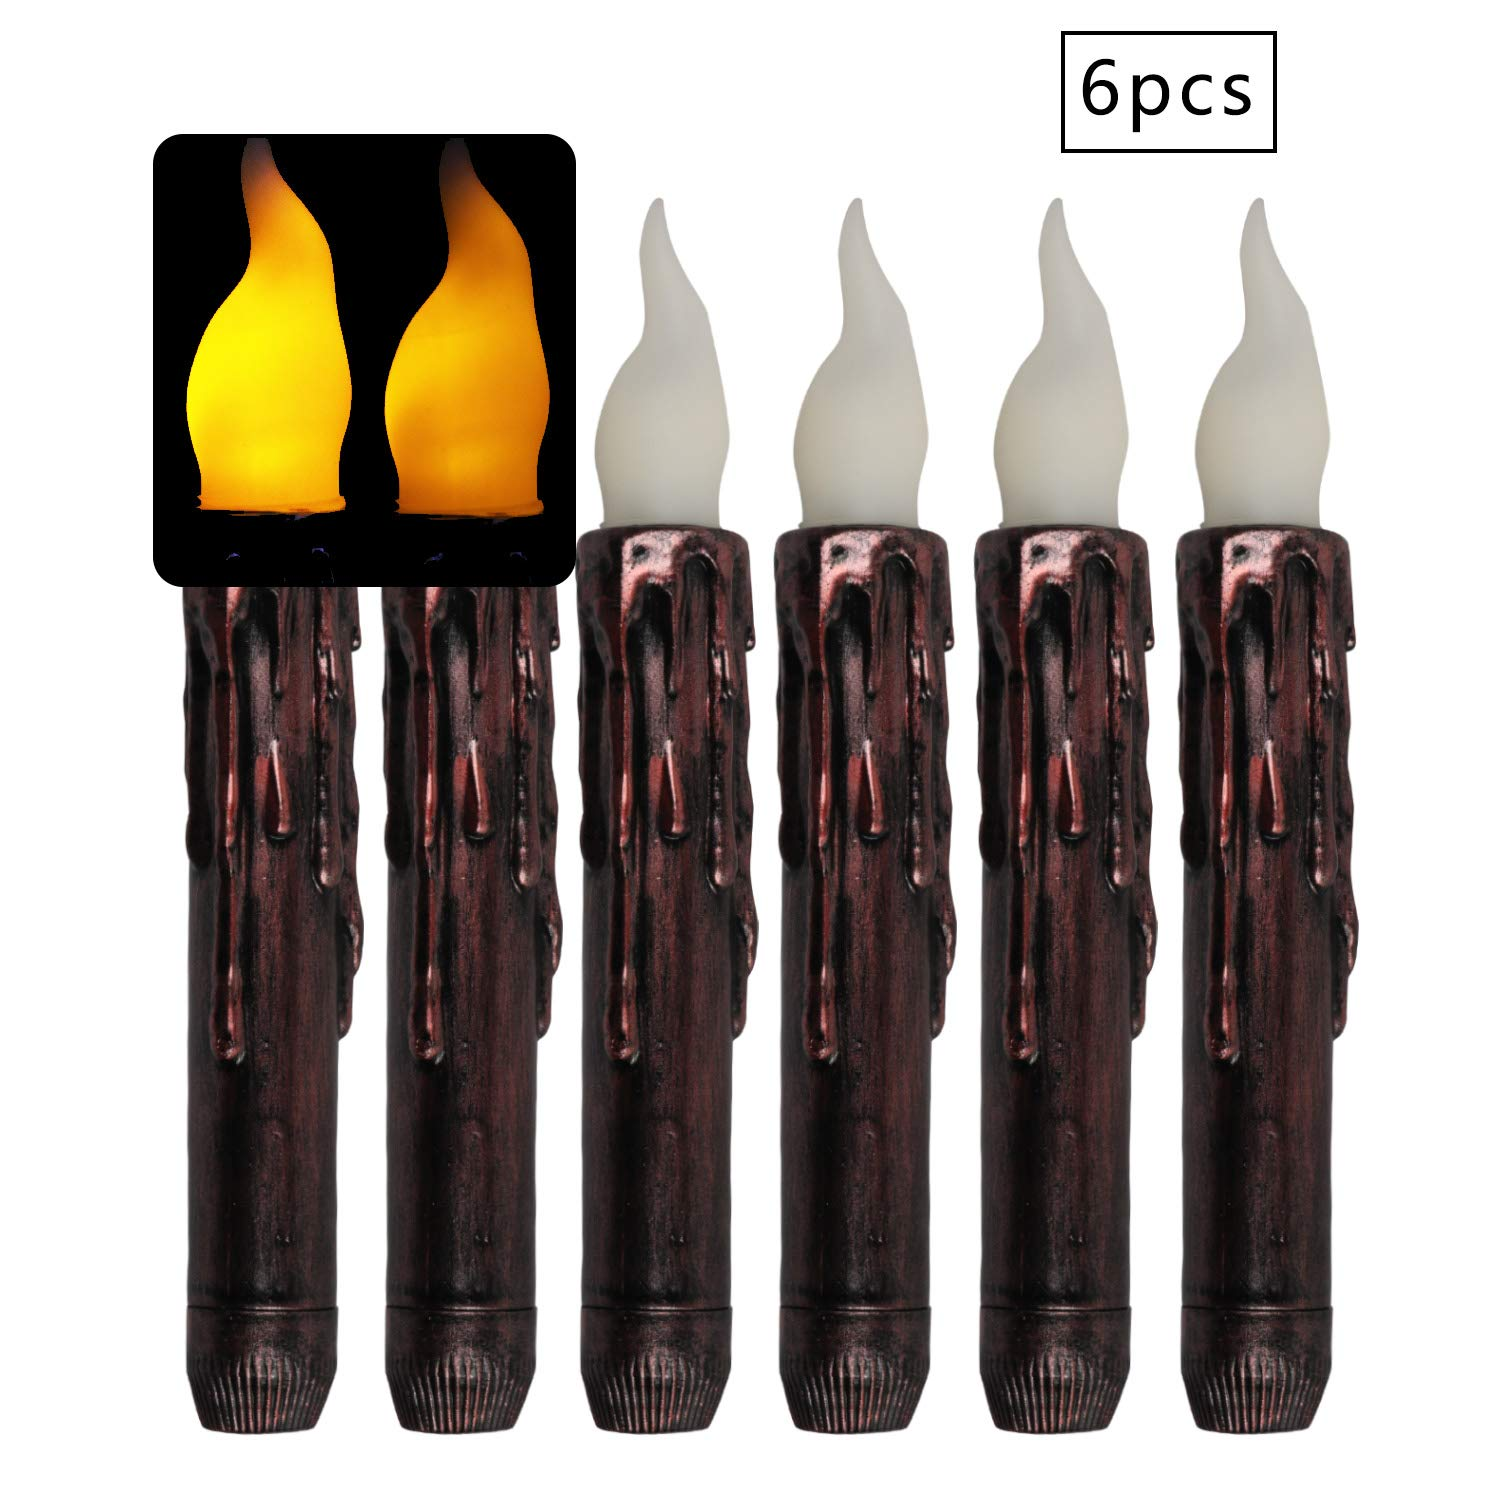 Dreaweet 6 Pack Amber Battery LED Taper Lights, Flameless Flickering Electric Fake Candle for Votive, Wedding, Party, Table, Dining Room, Bars, Hotel, Birthday, Holidays, New Year,Honeymoon